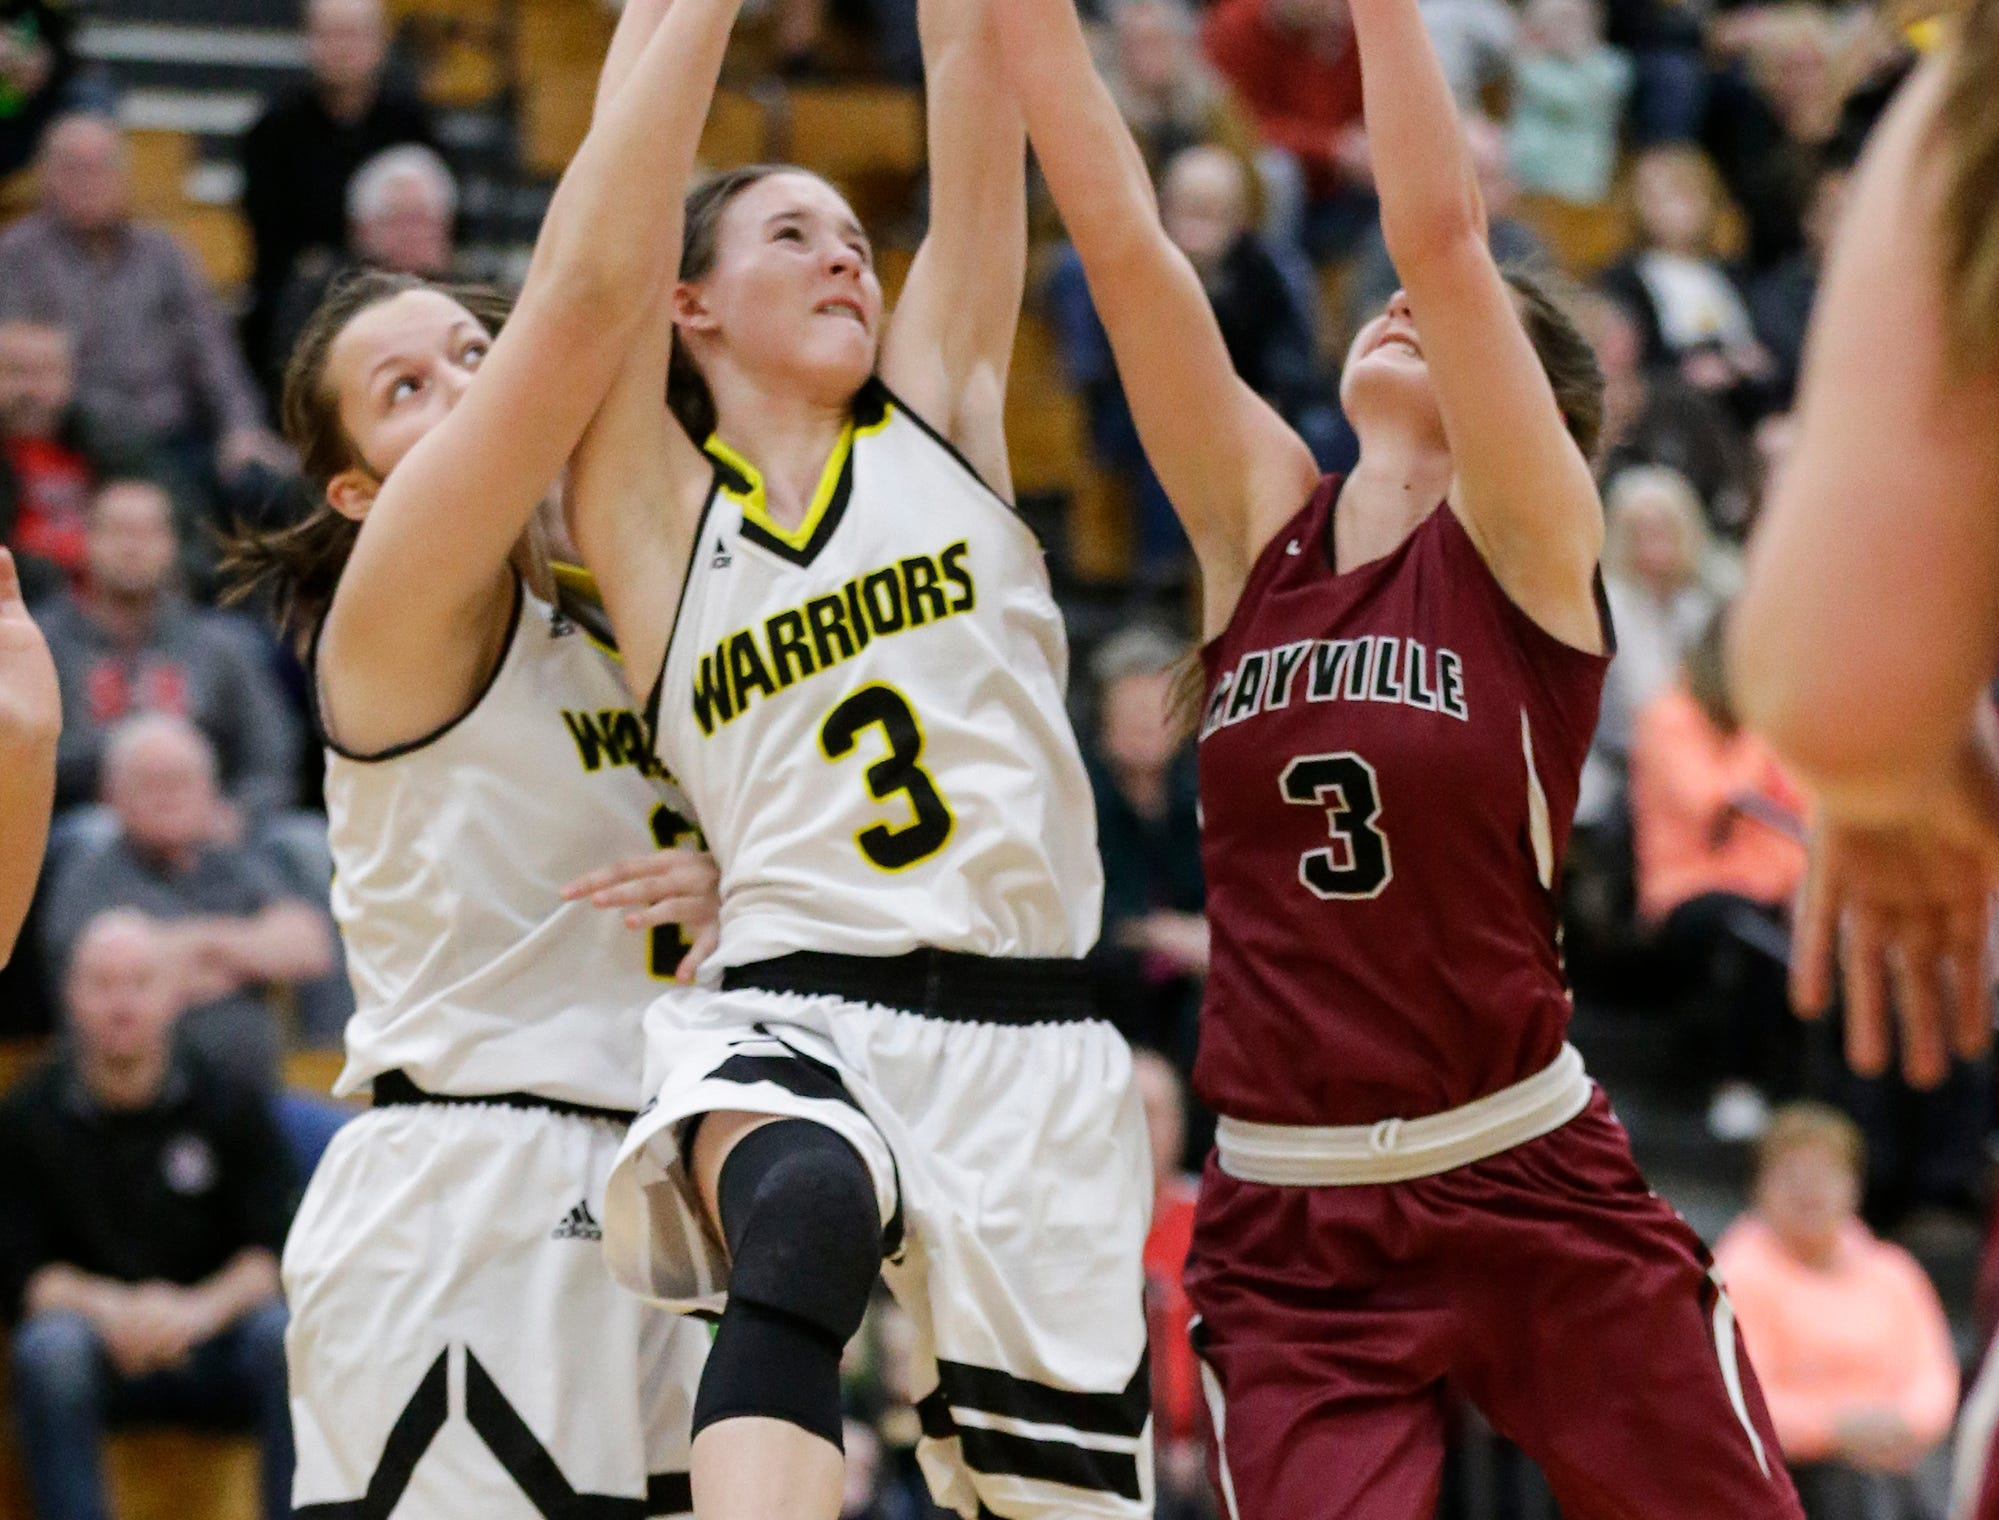 Waupun High School girls basketball's Gaby Matamoros (20) and Abbie Aalsma (3) reach for a rebound with Mayville High School's Amber Schraufnagel (3) Saturday, February 23, 2019 during their WIAA Division 4 sectional quarterfinal game in Waupun. Waupun won the game 62-45. Doug Raflik/USA TODAY NETWORK-Wisconsin